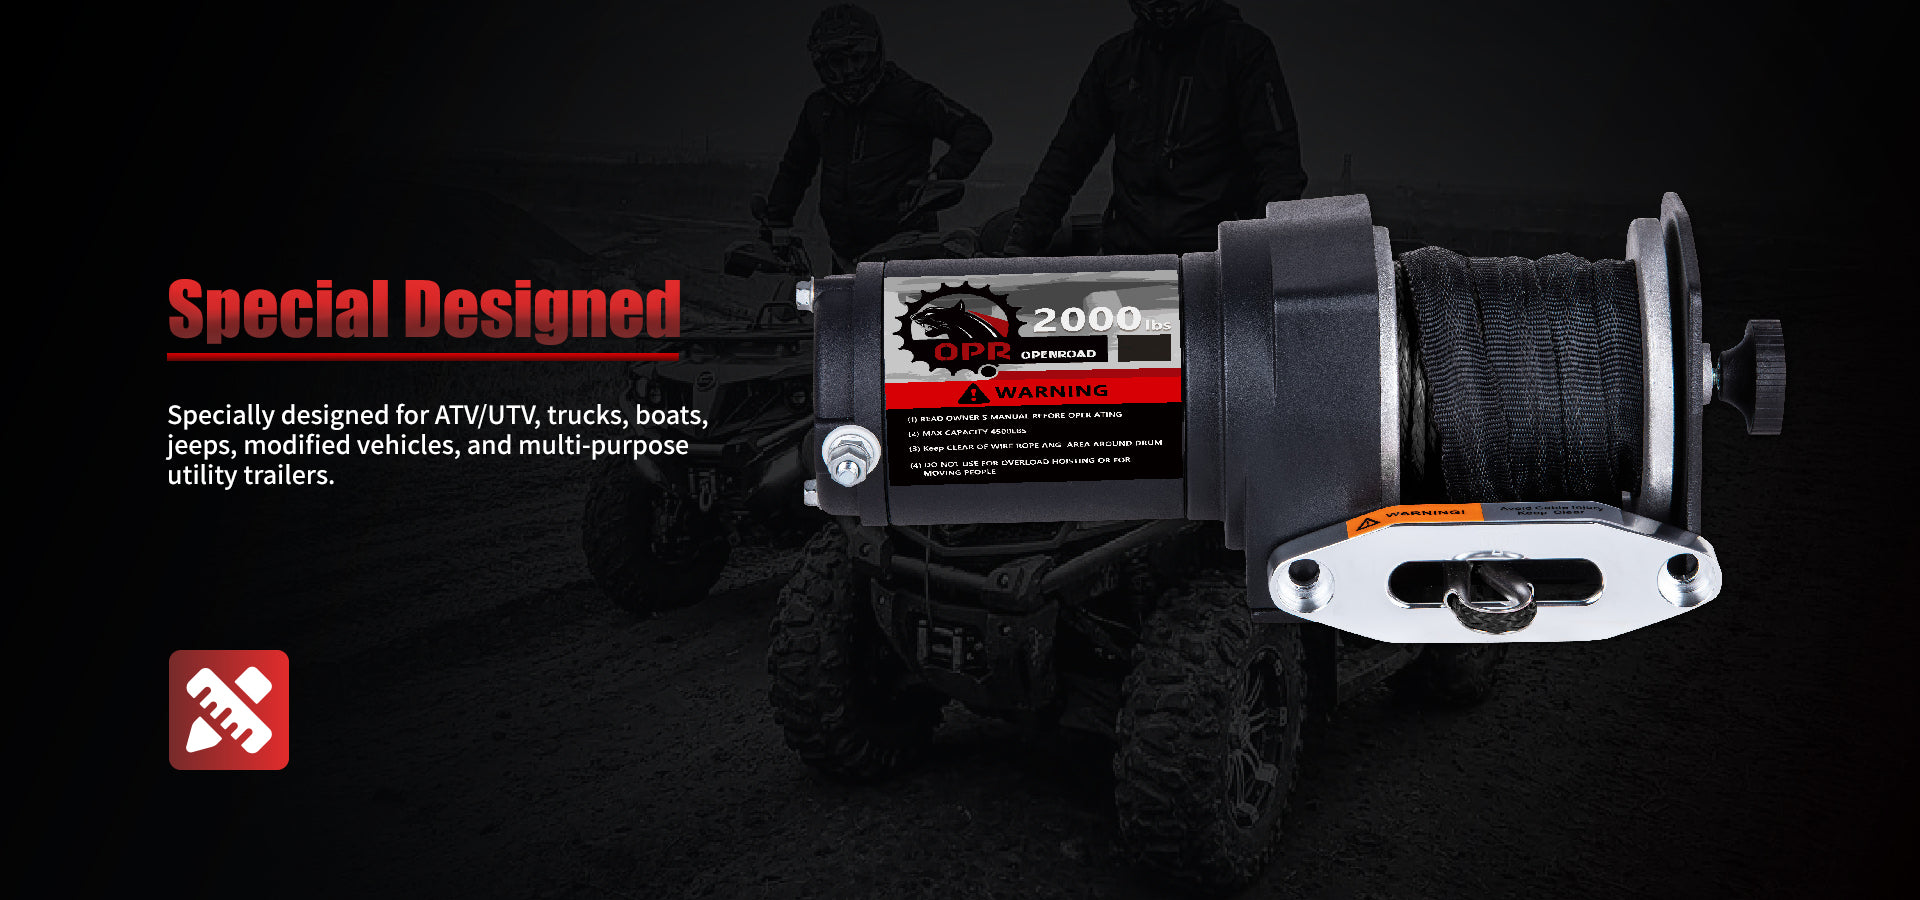 openroad-g1-2000lb-atv-winch-with-synthetic-cable